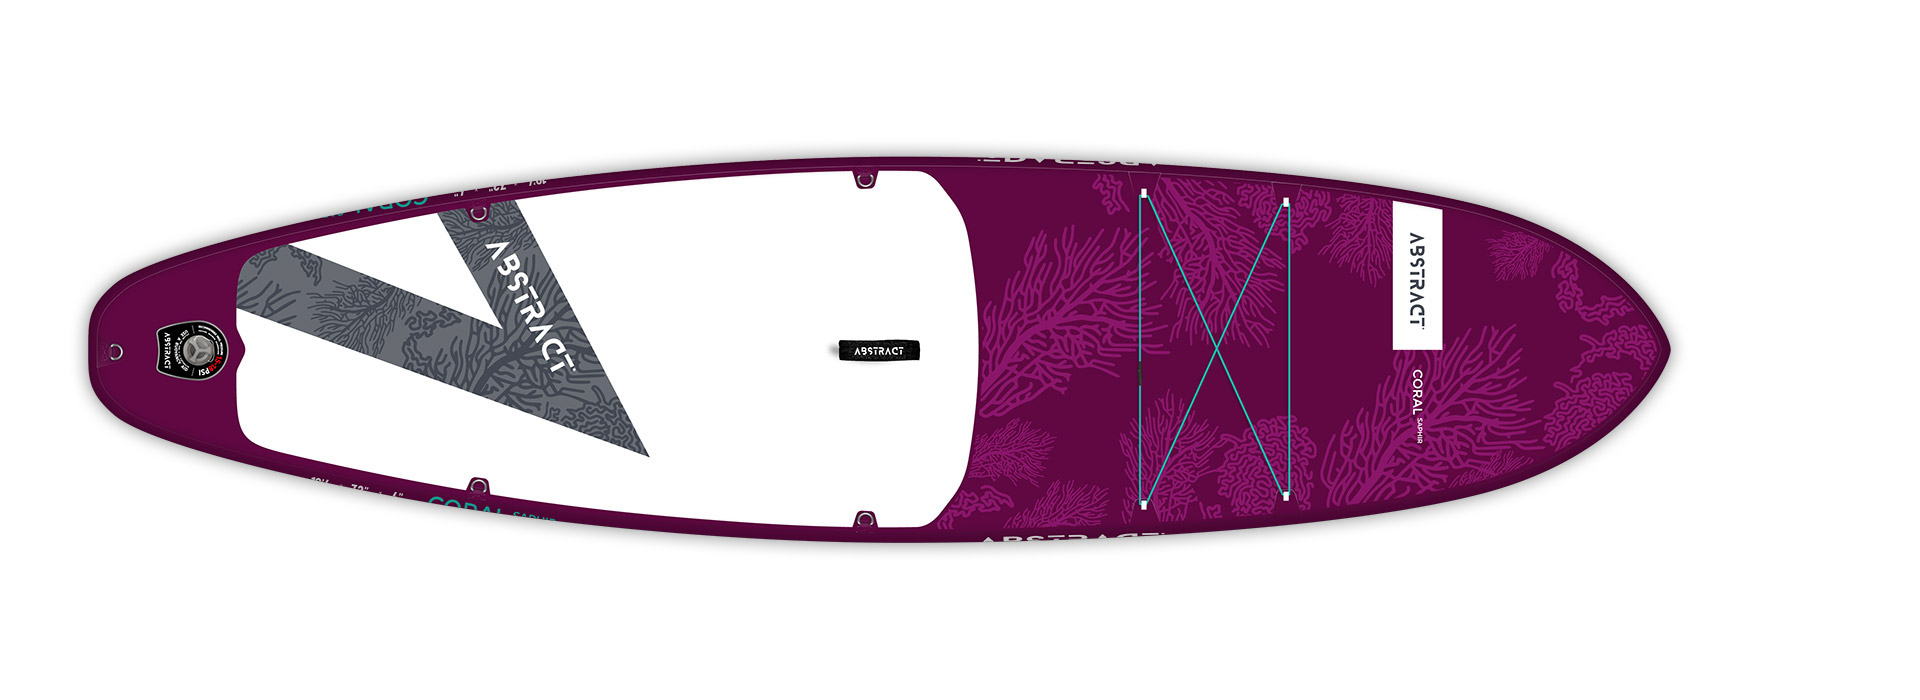 Planche de paddle Board gonflable Coral Saphir (Violet) Abstract 2021